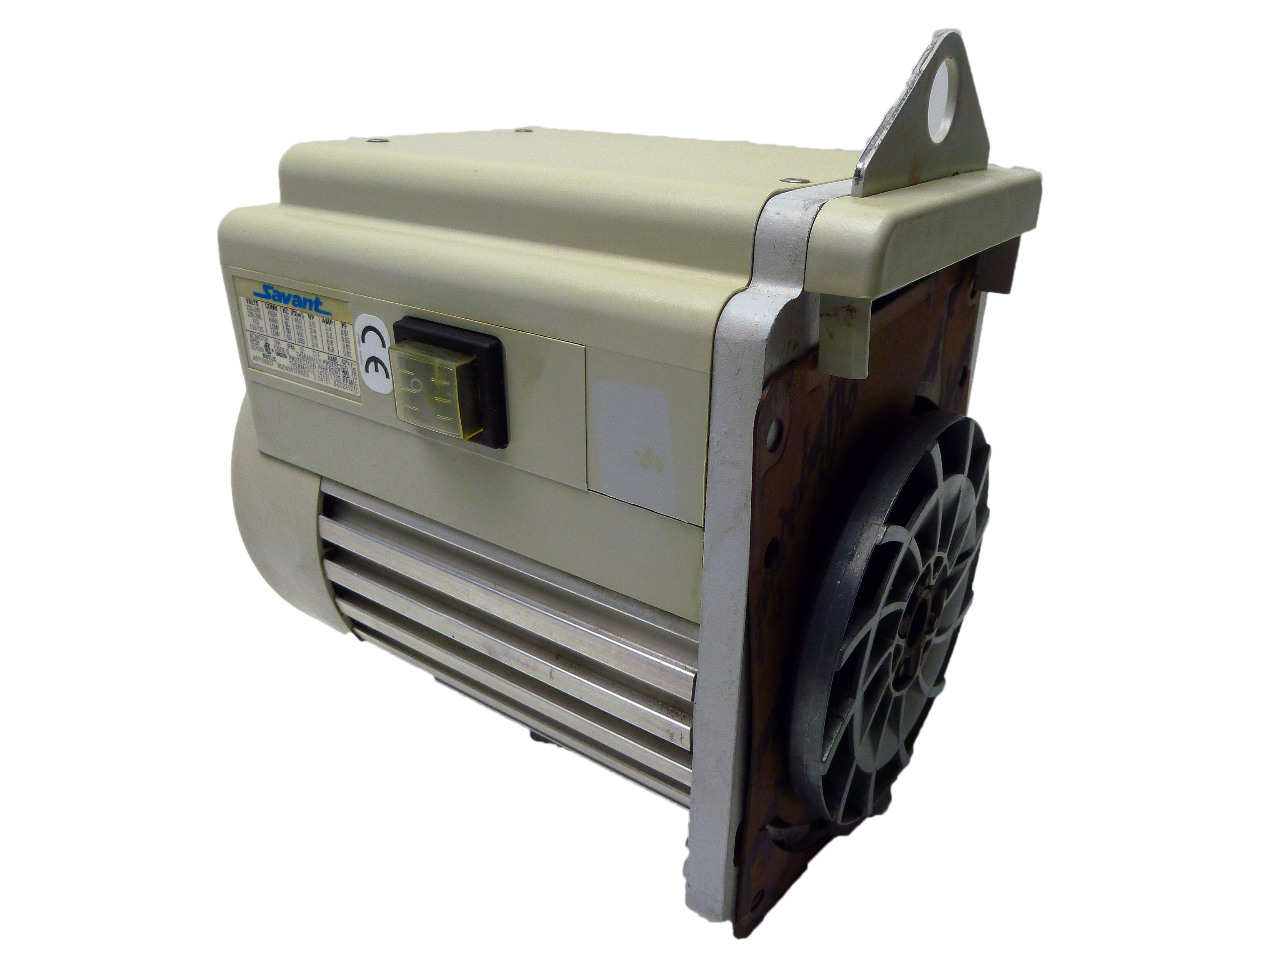 Hayward Pool Pump Motor Replacement also Hayward Pool Pump Motor likewise Air  pressor Pump Replacement Parts as well Pentair Pool Pump Motor Replacement likewise E46 M3 SMG Pump Motor Repair. on pump motor replacement